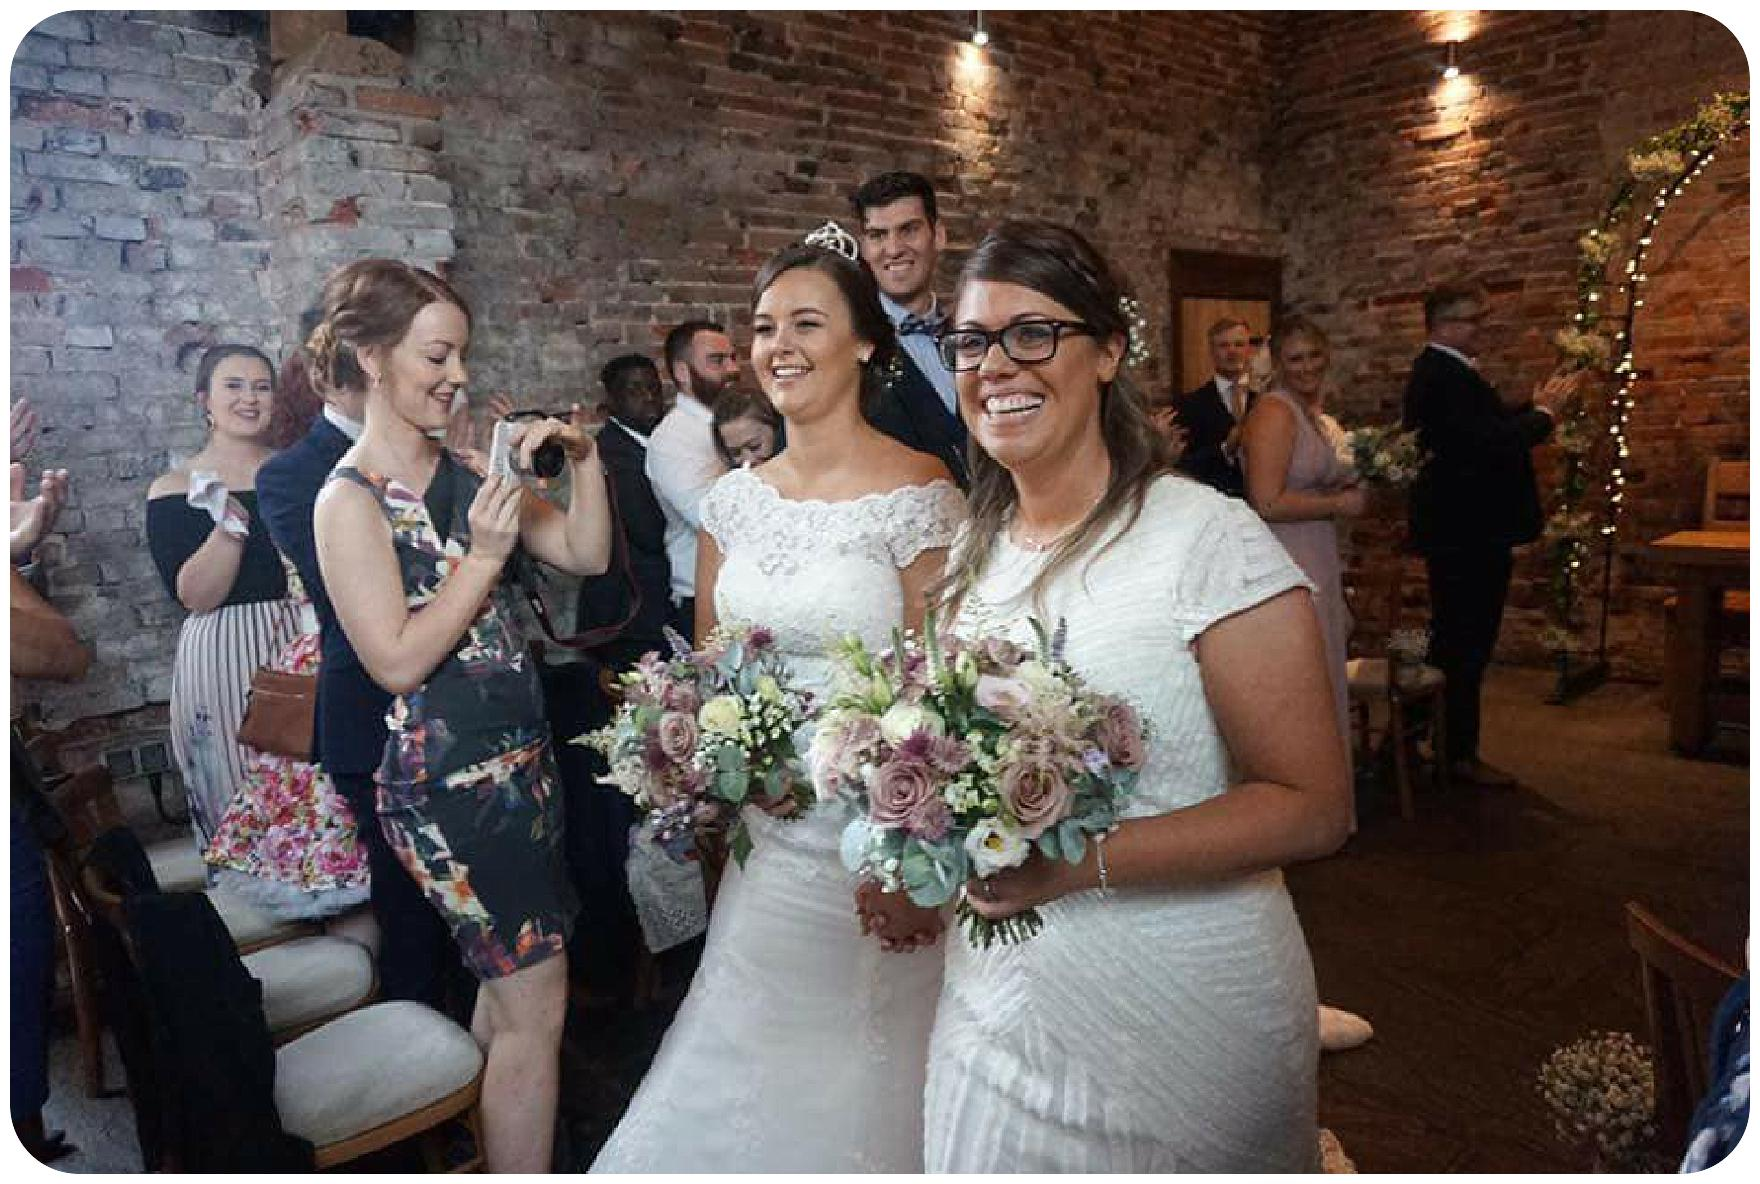 Lichfield Barn Wedding Flowers at Packington Moor Fine Flowers